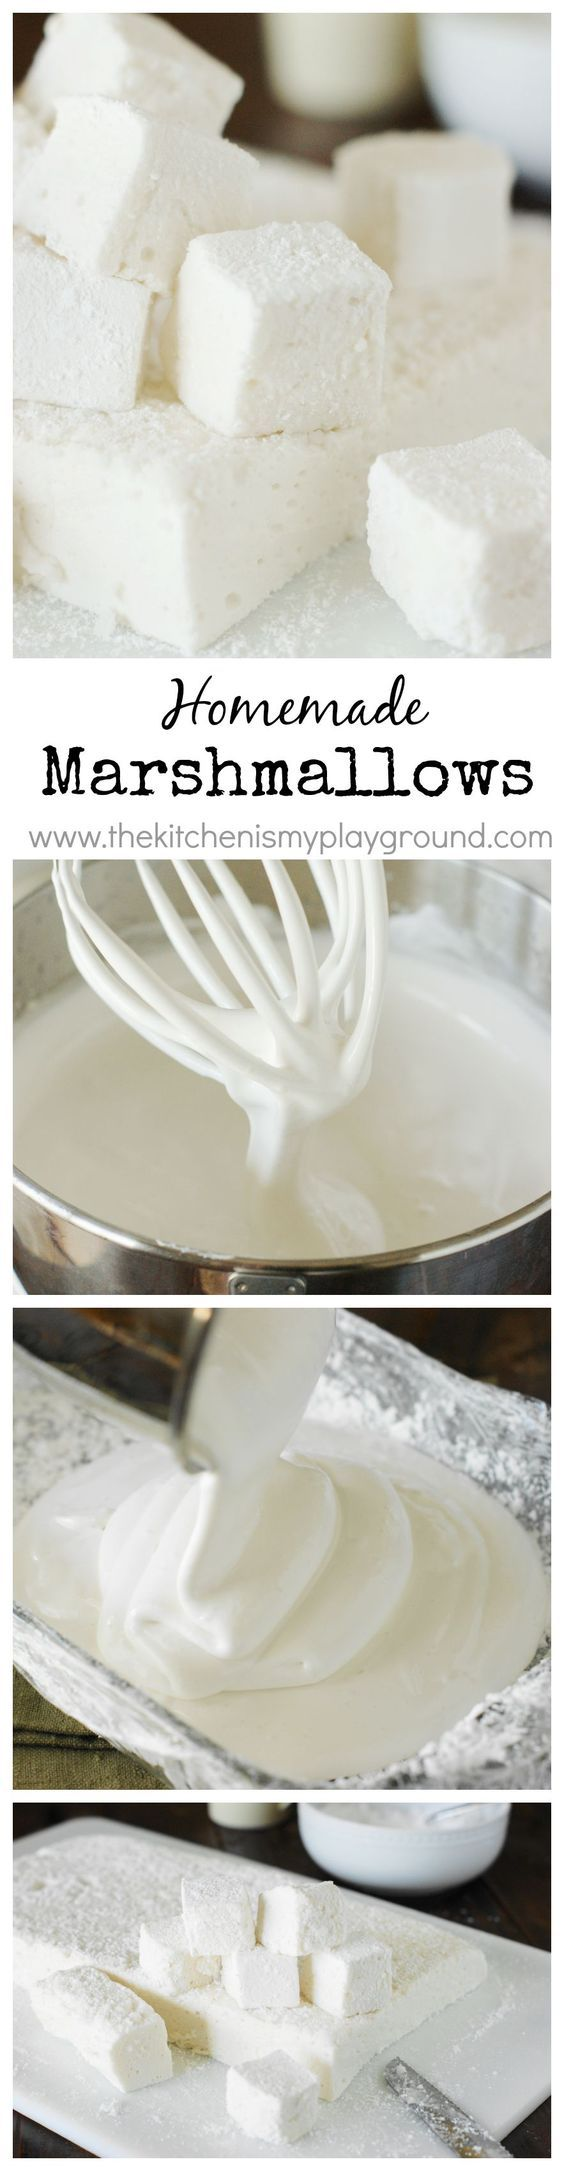 How to Make Homemade Marshmallows ~ they're TOTALLY worth the homemade time & effort! www.thekitchenismyplayground.com: